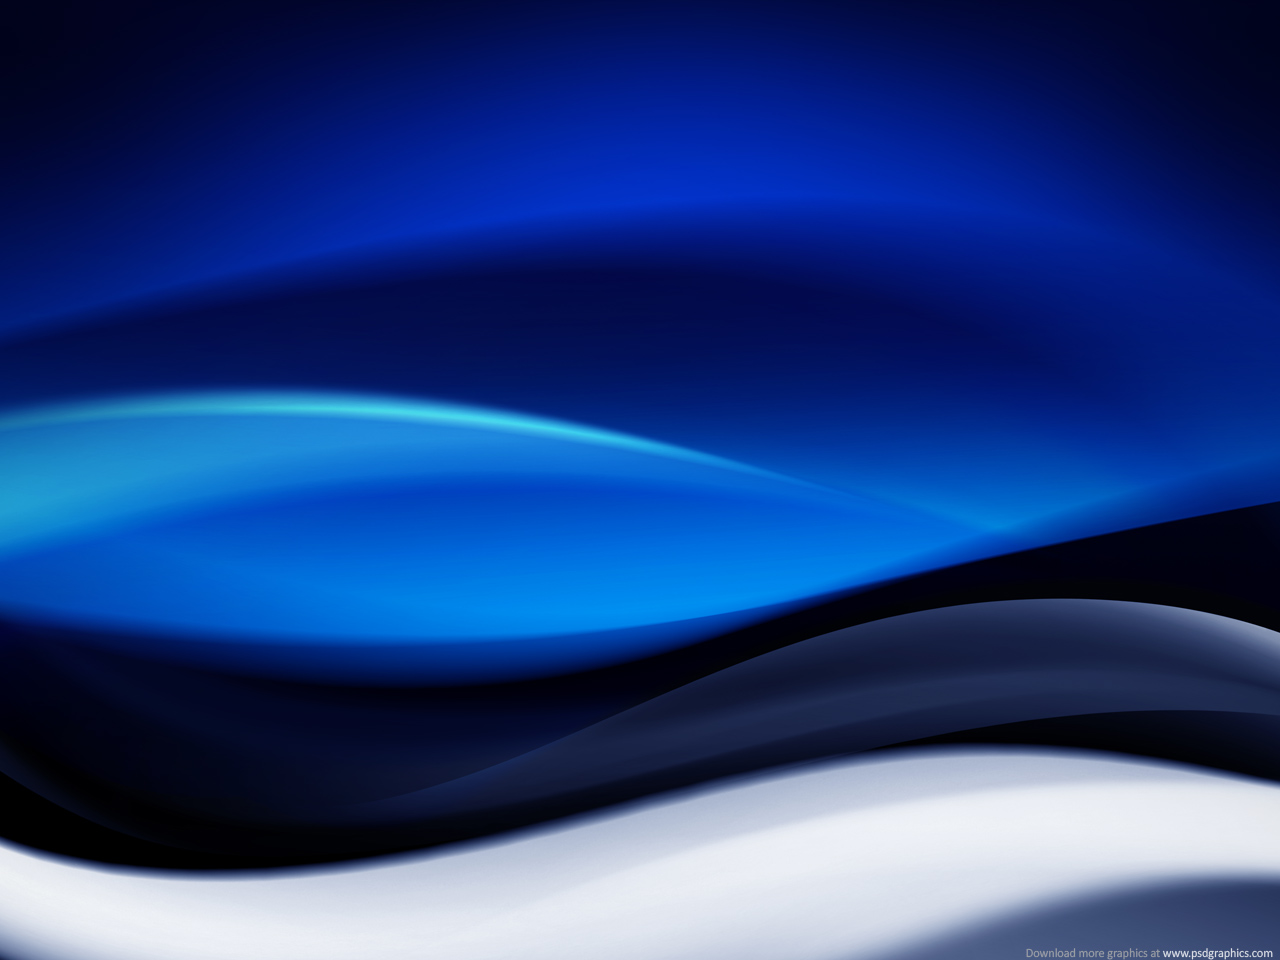 Dark Blue and White Wallpaper - WallpaperSafari